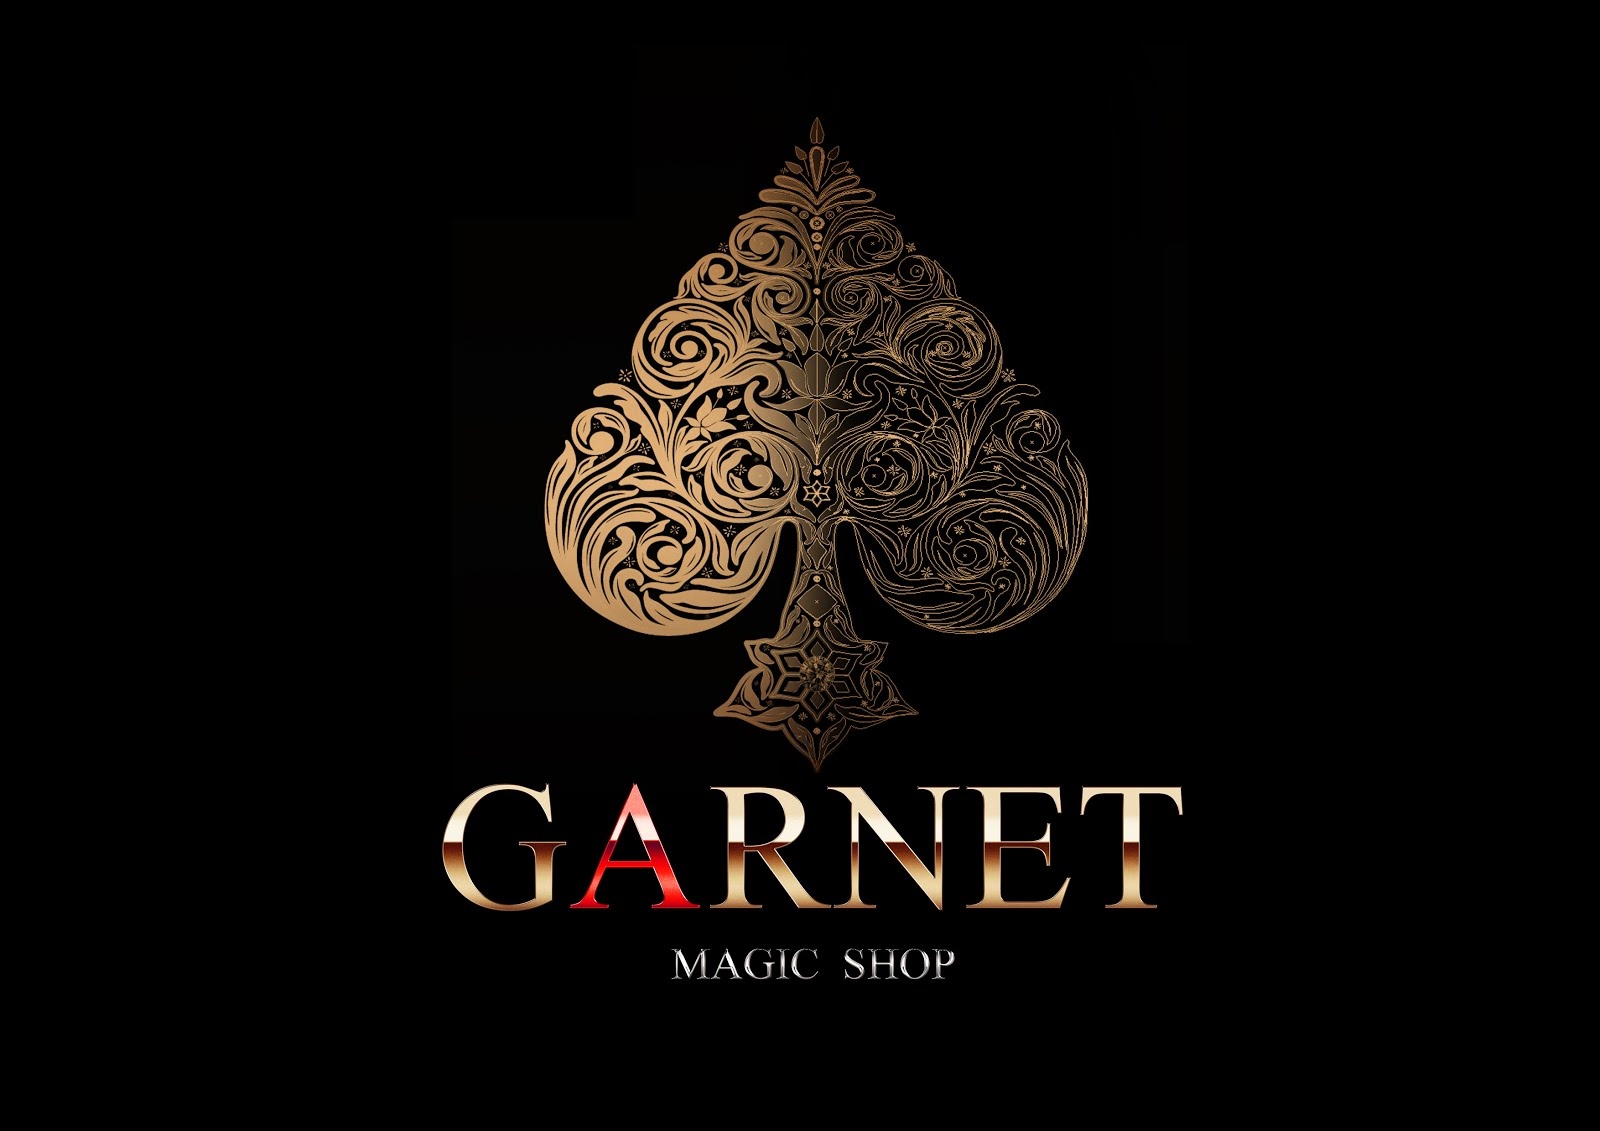 GARNET-magic shop-